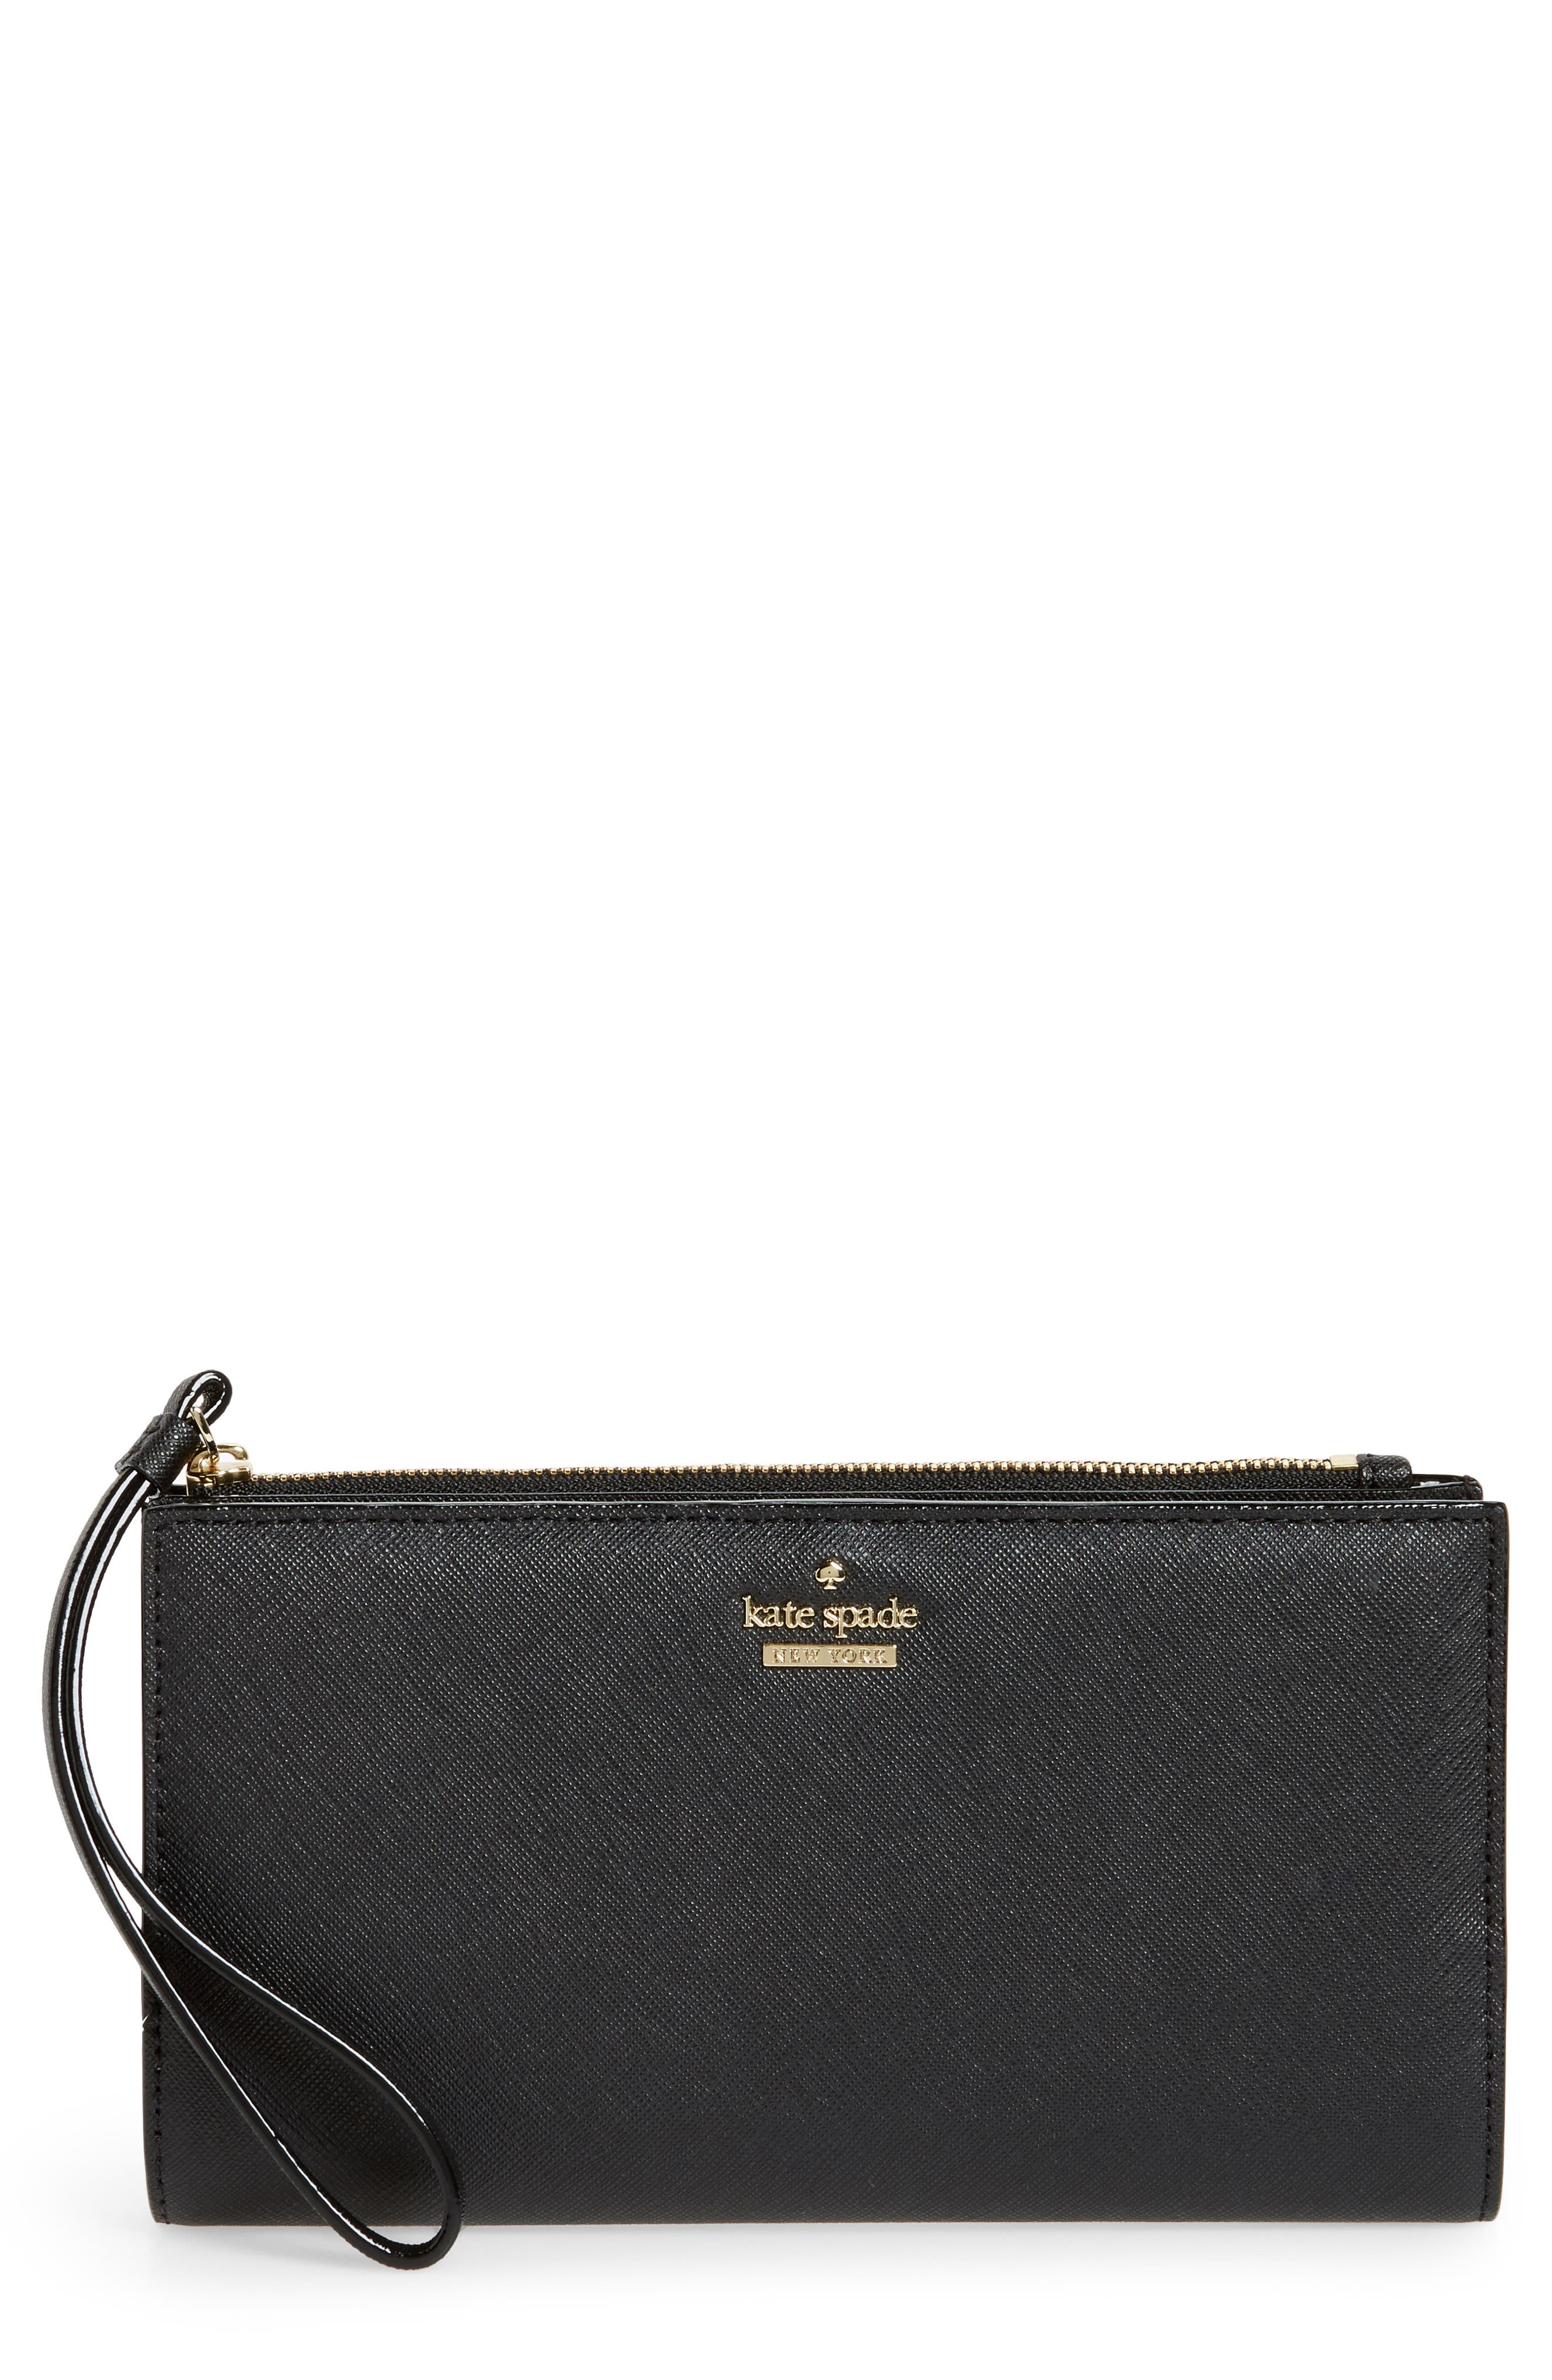 cameron street - eliza leather wallet,                             Main thumbnail 1, color,                             Black